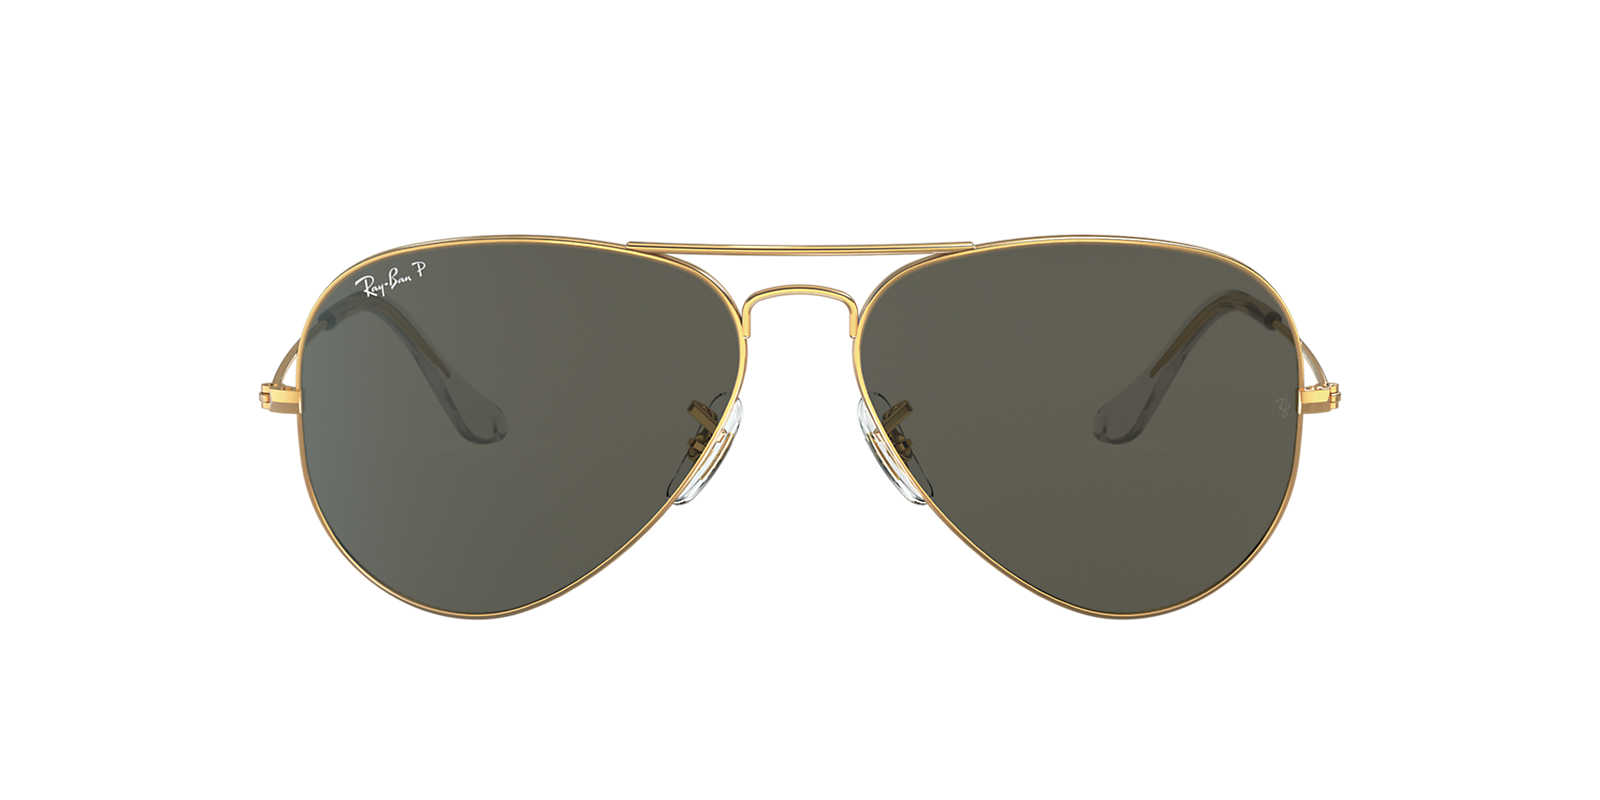 ray ban original aviator  ray ban gold shiny rb3025 58 original aviator green polarized lenses 58mm